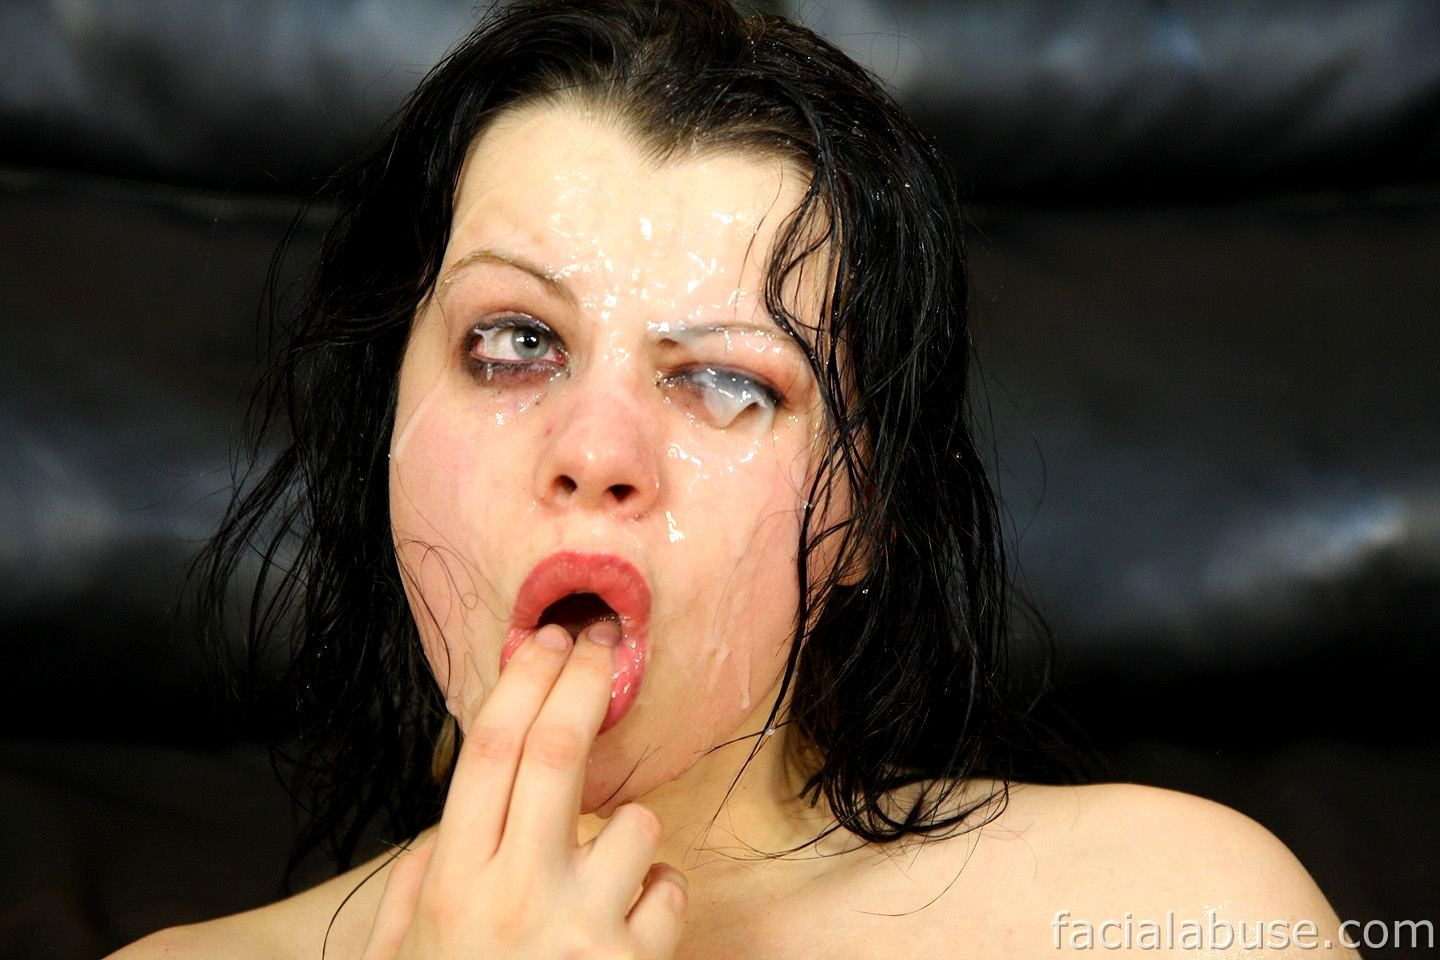 Facial abuse free video 2